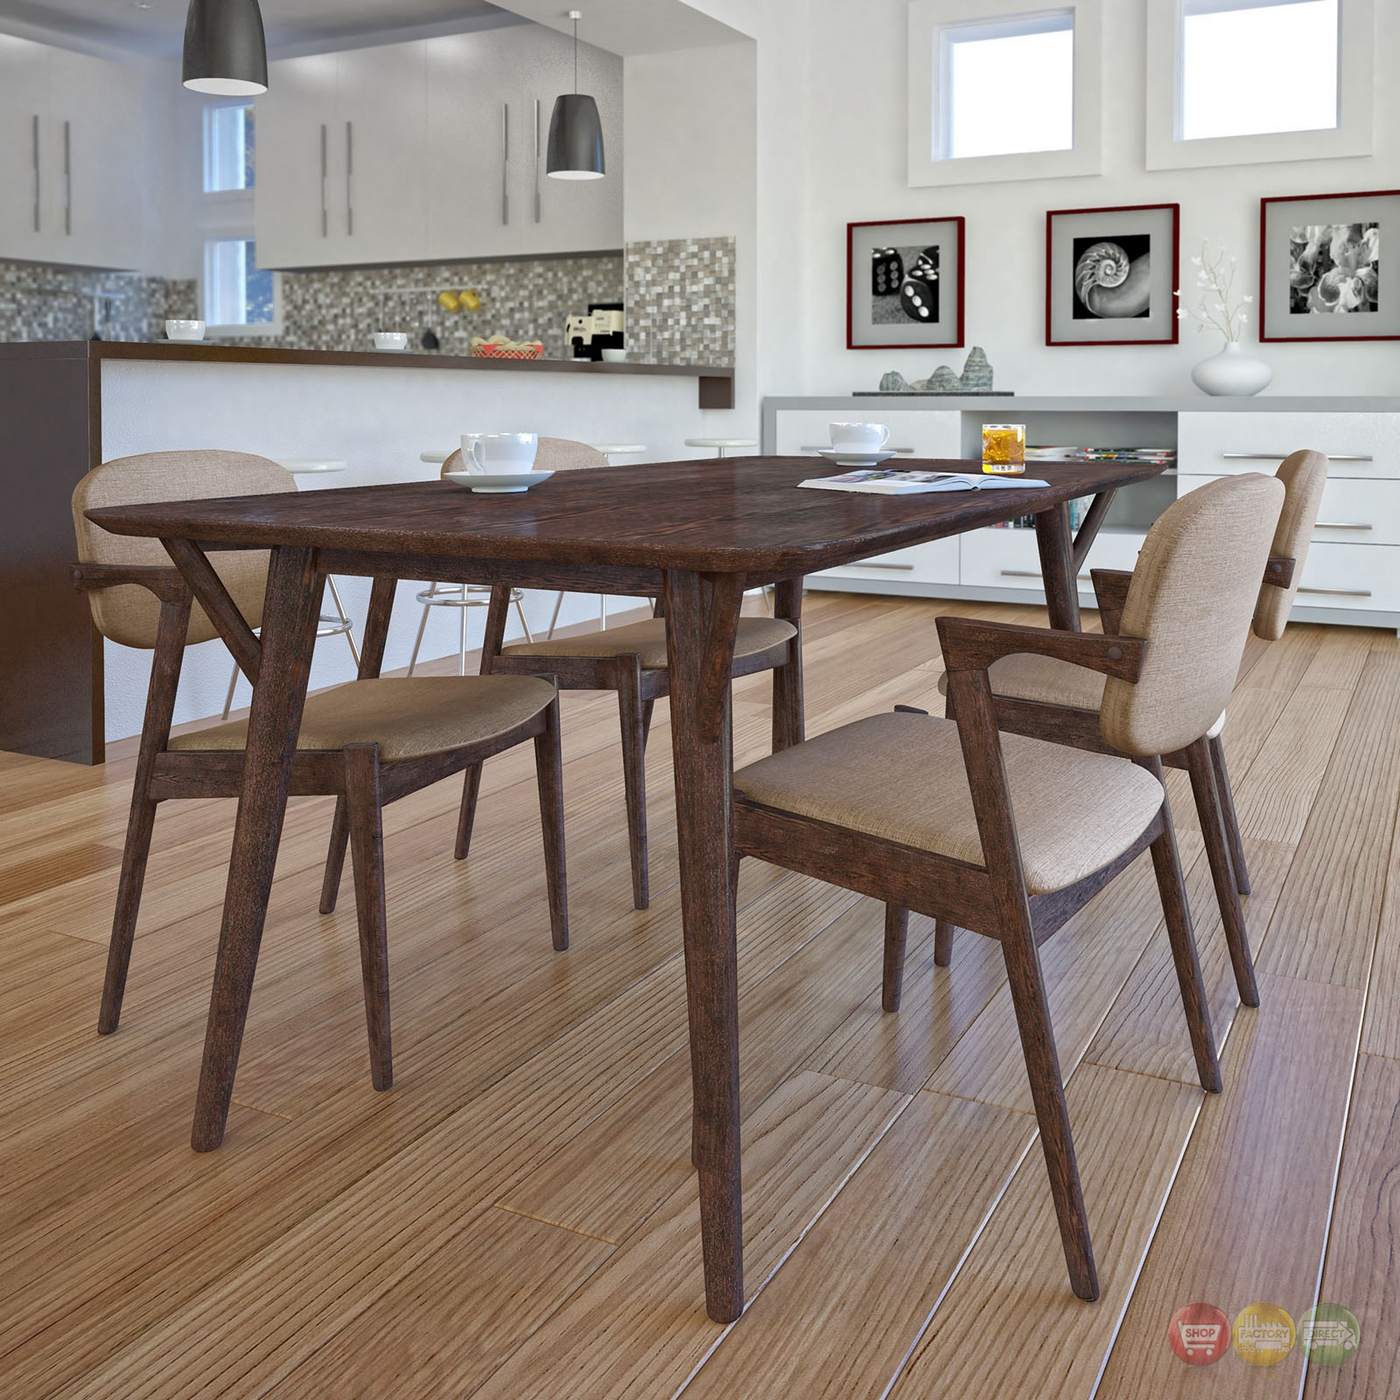 Mid Century Dining Set: Mid-century Modern 5pc Wooden Dining Set With Upholstered